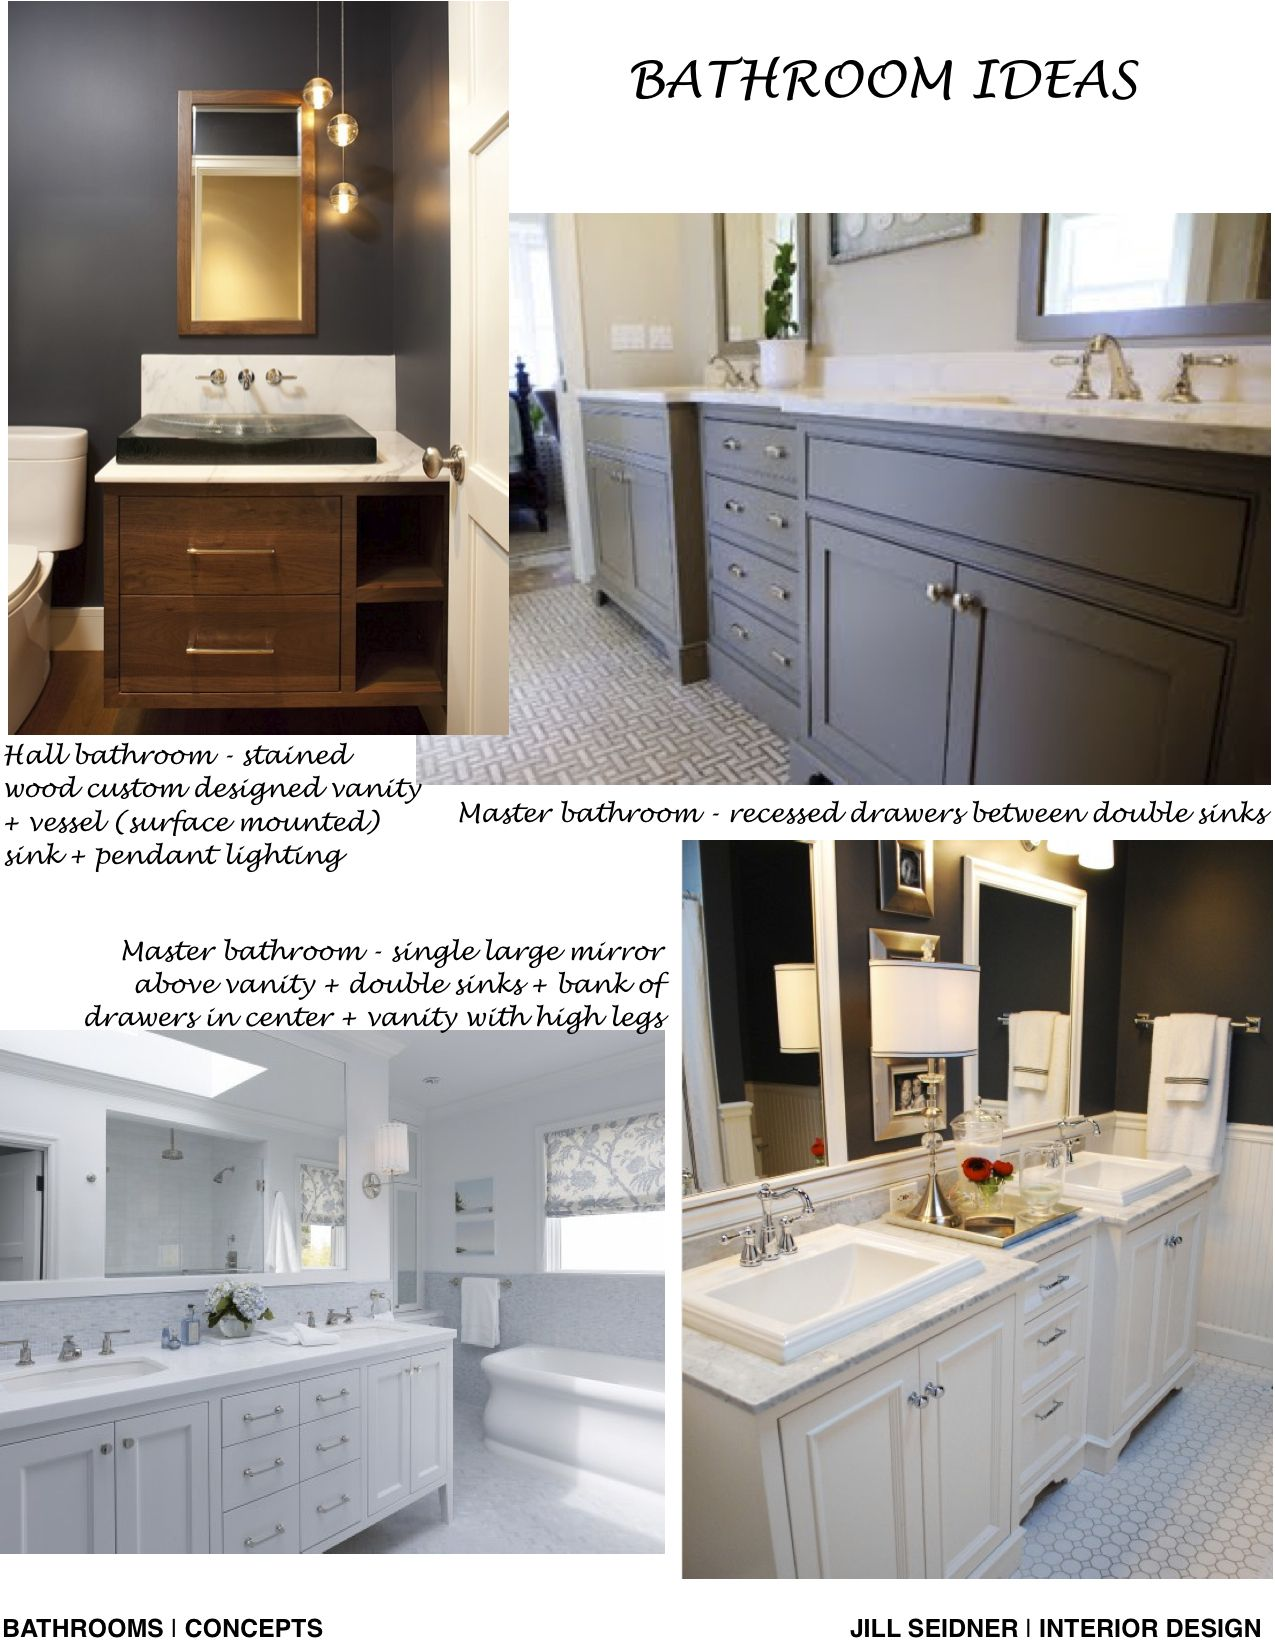 Pasadena House Bathroom Remodel Concept Board Like The Gray Finish - Bathroom remodel pasadena